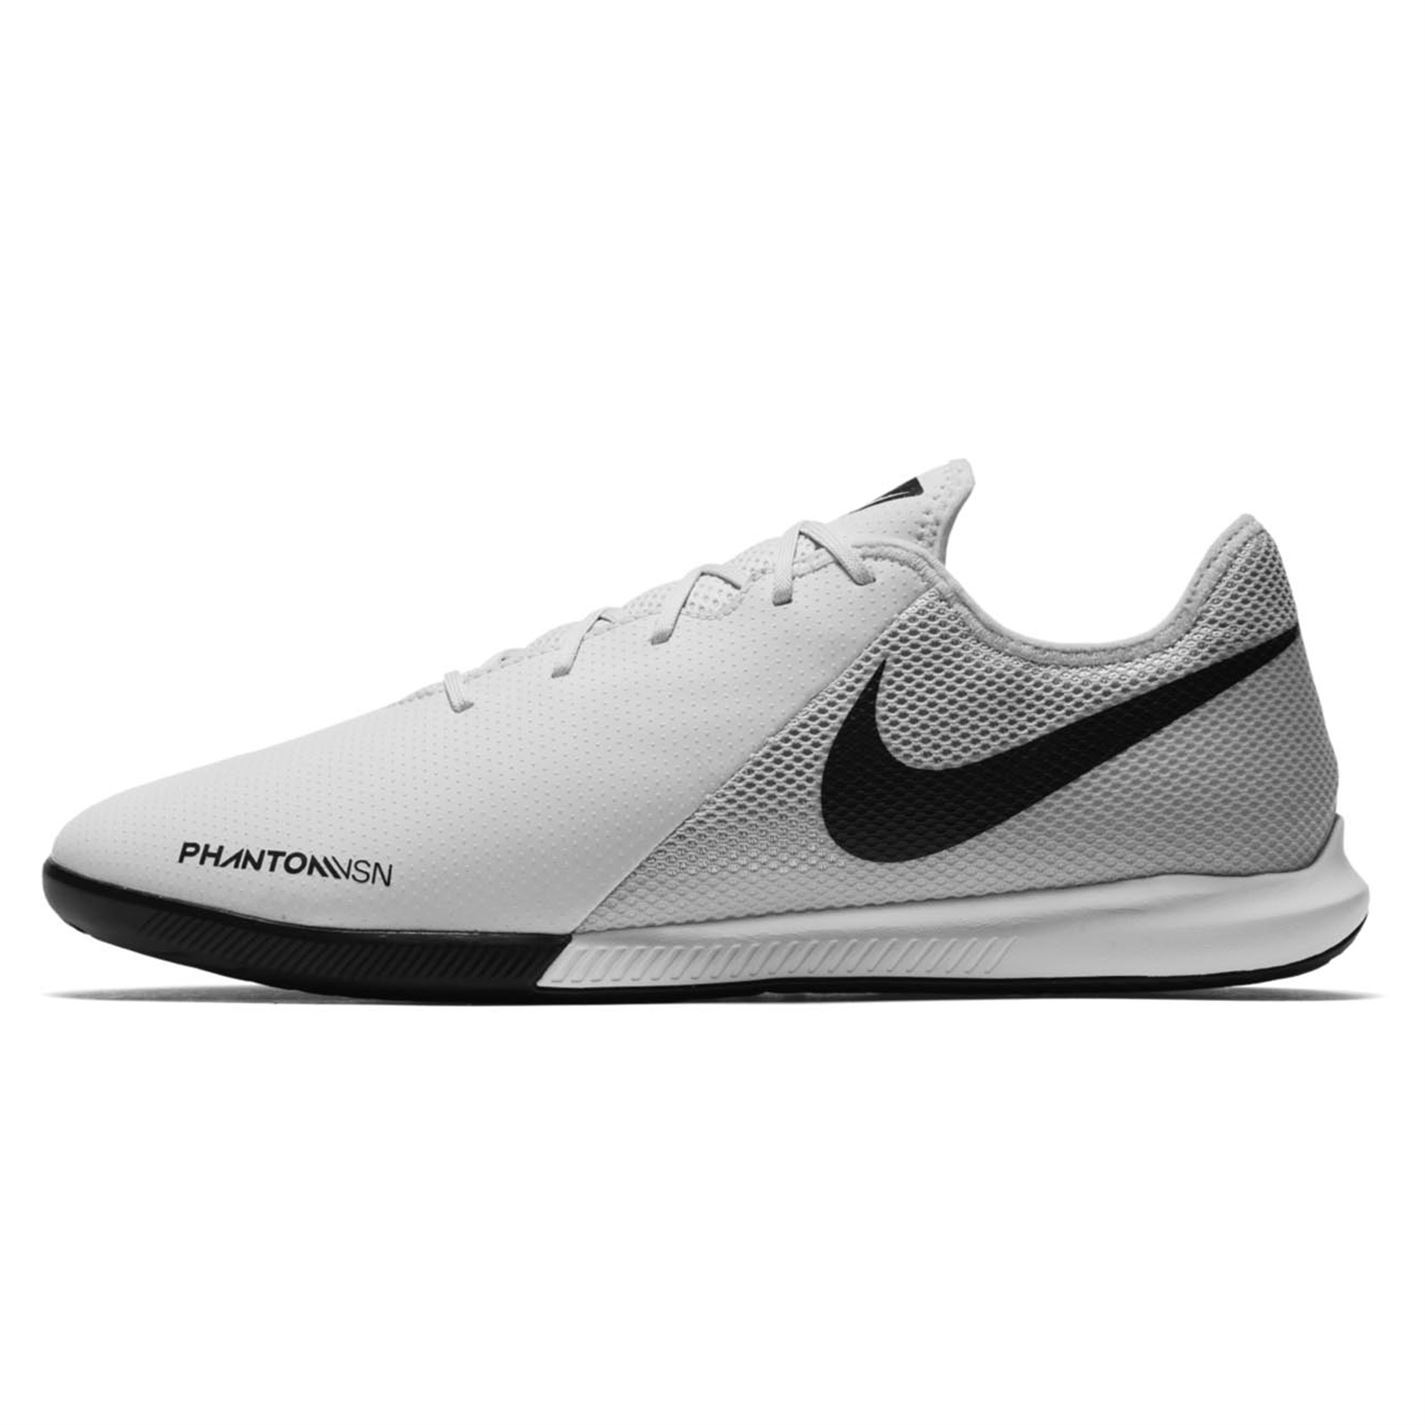 Nike Phantom Vision Gato X Indoor Football Trainers Mens Soccer ... f16bf17d7e3a9